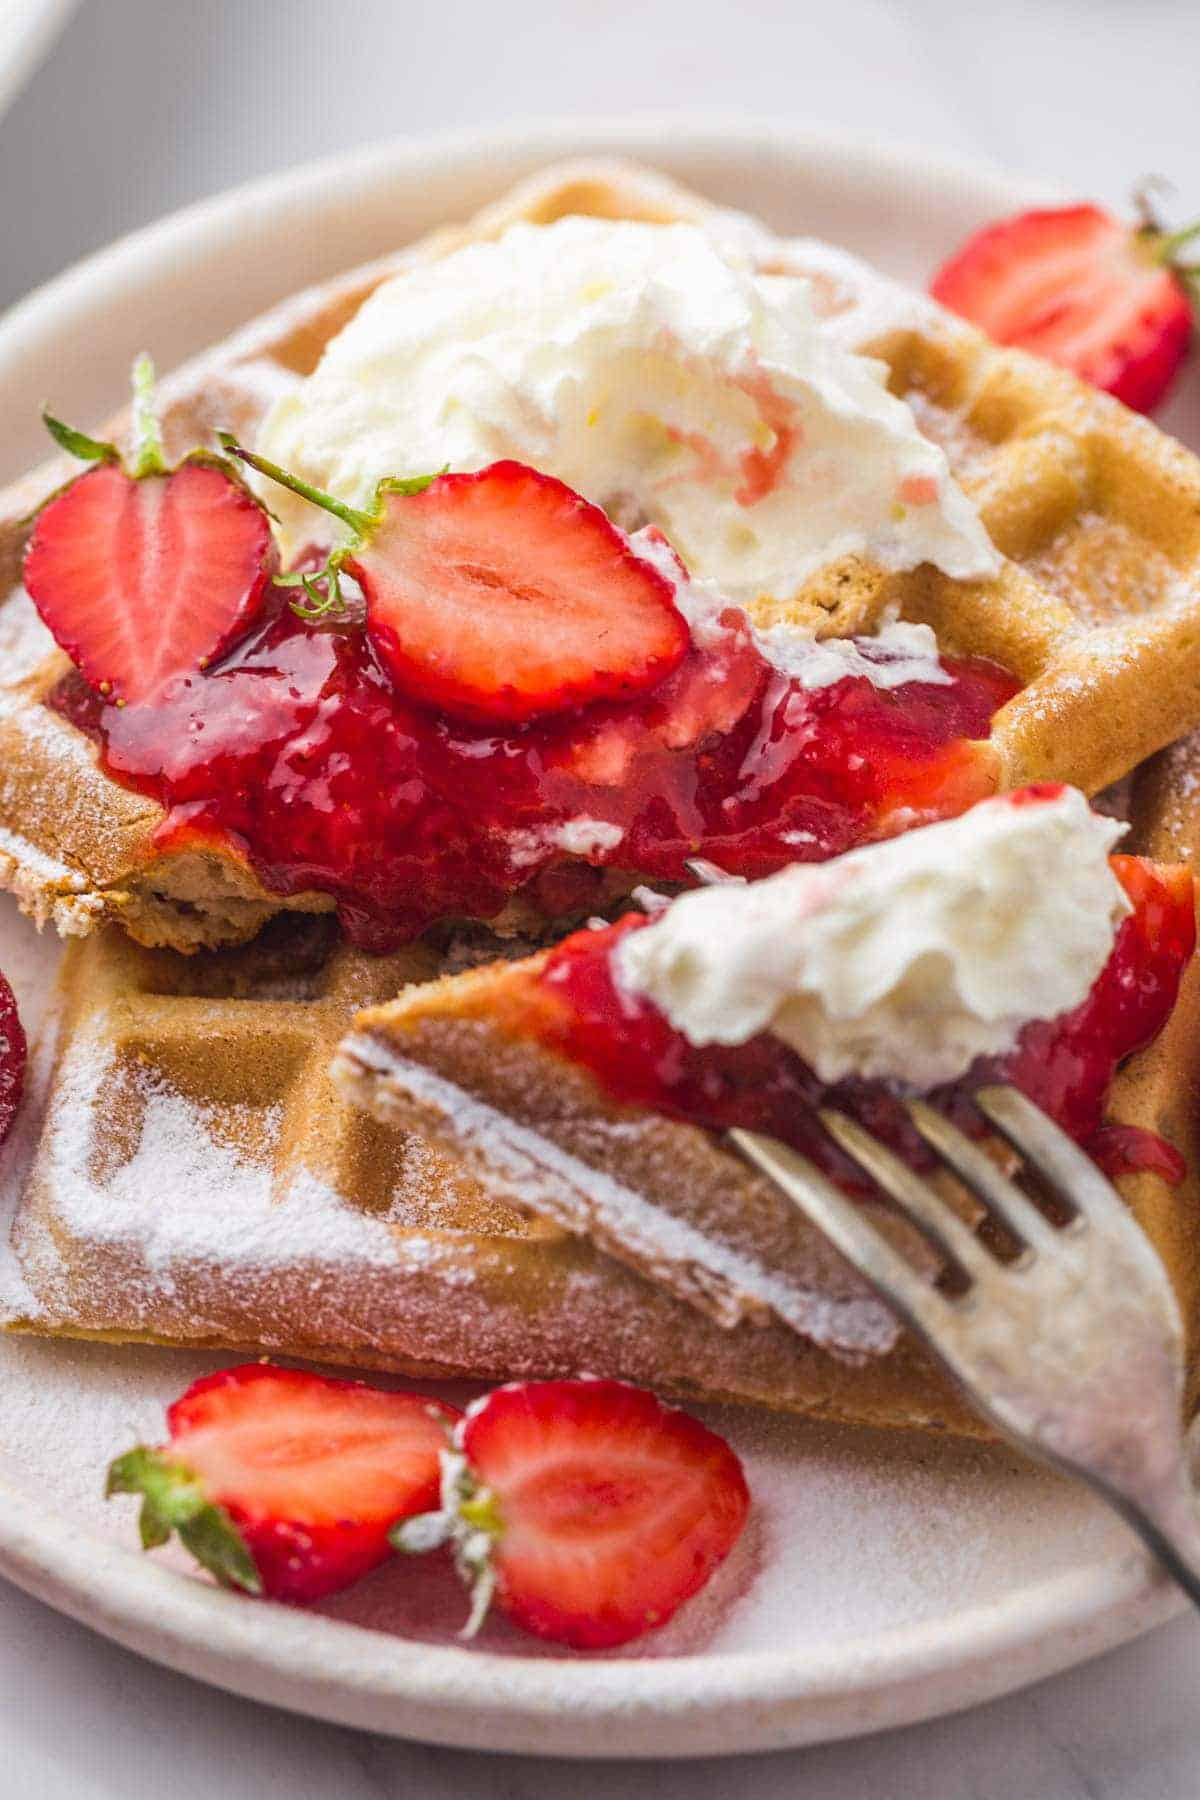 Strawberry sauce on strawberry waffles with cream